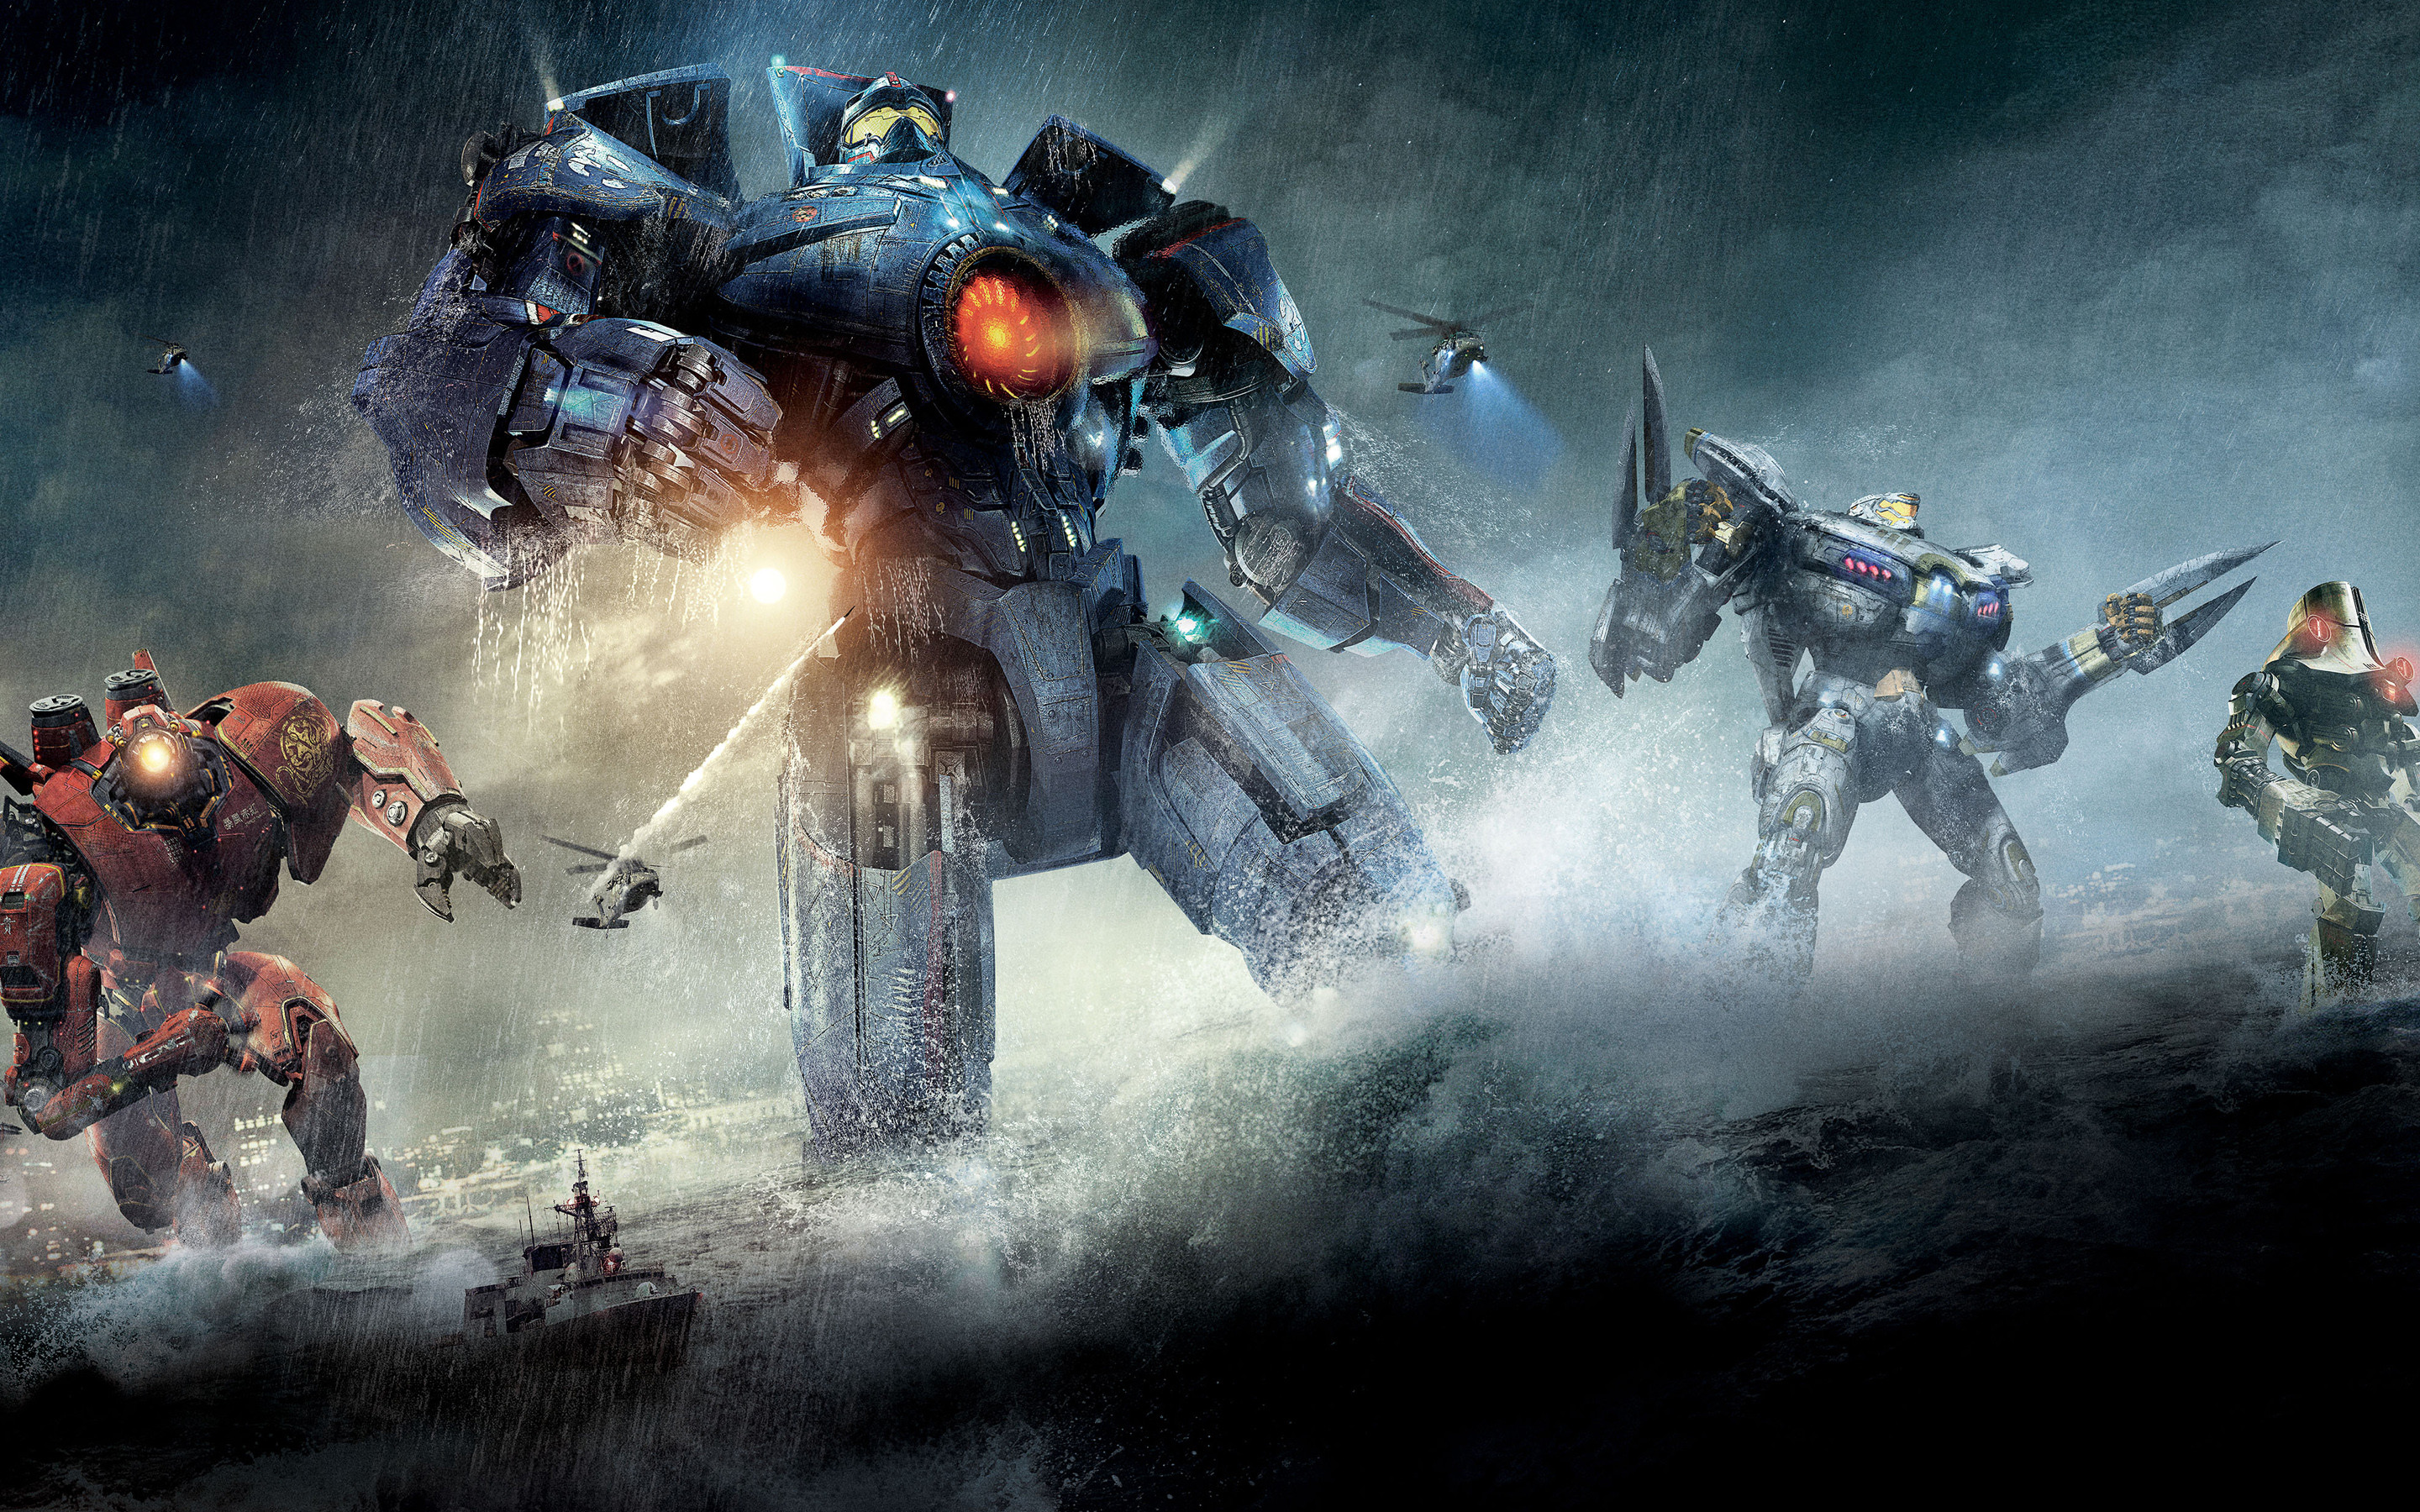 2880x1800 Coyote Tango in Pacific Rim Wallpapers | HD Wallpapers ...